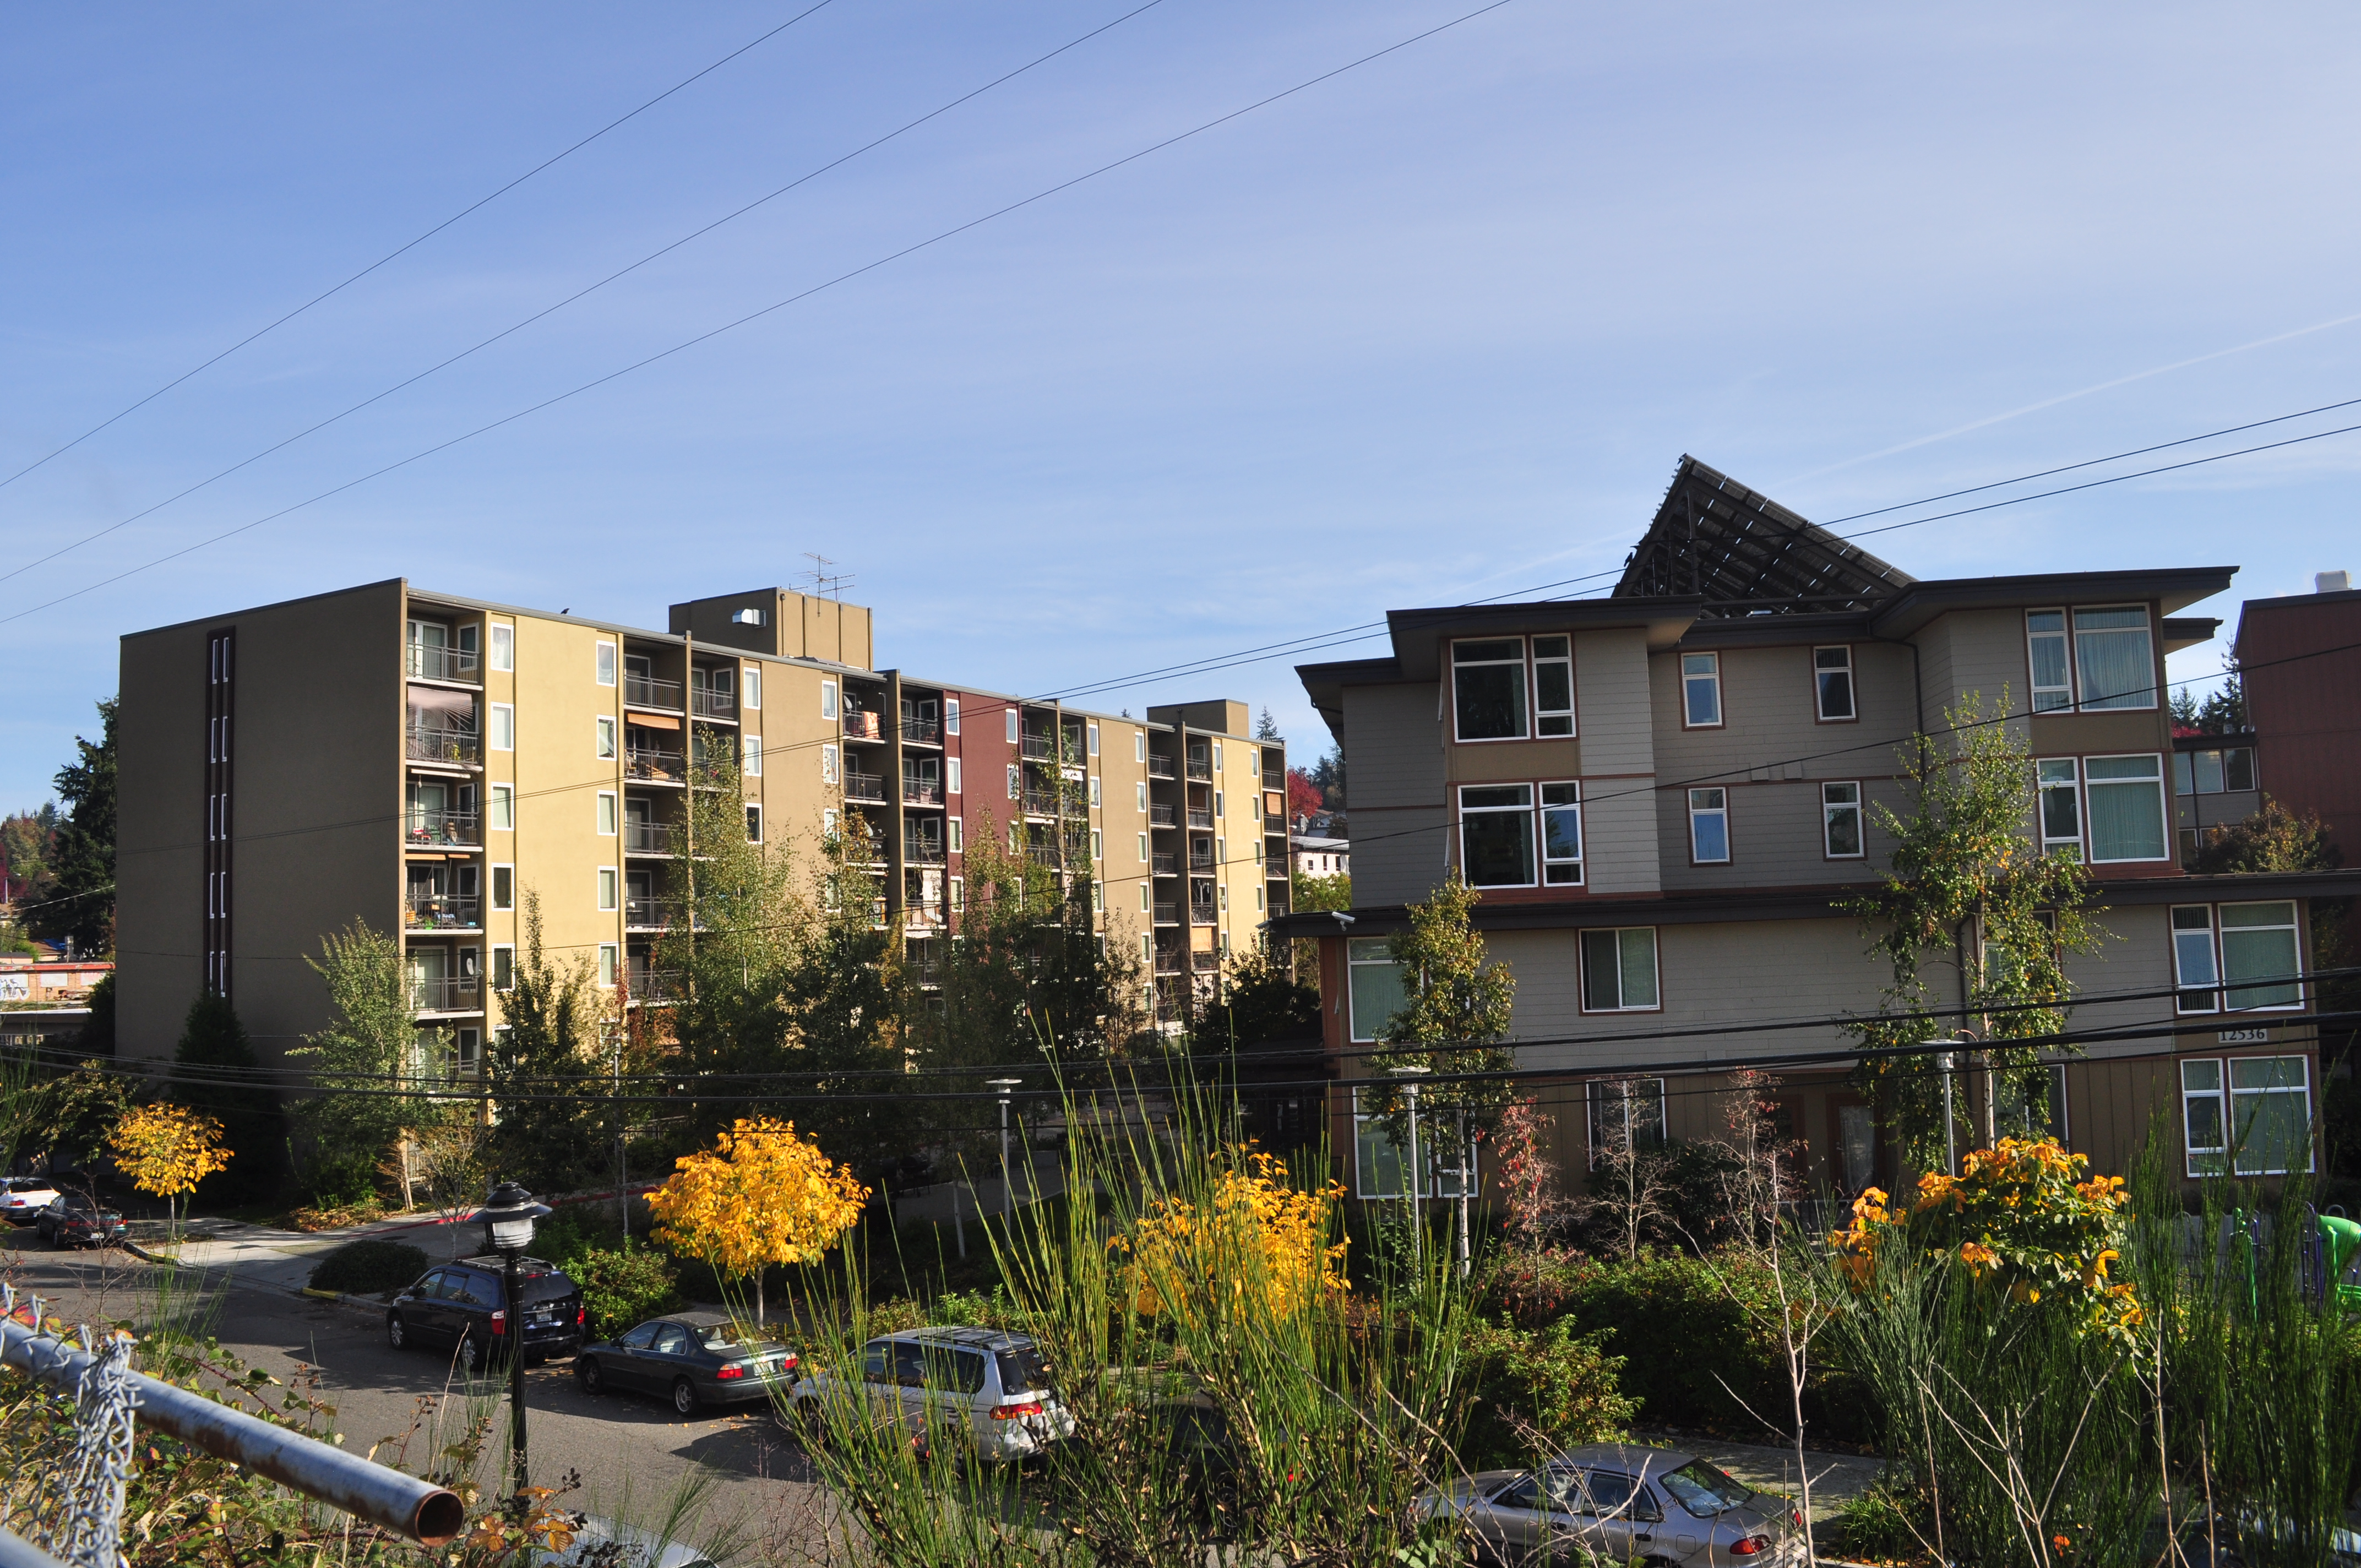 City Apartment Buildings file:seattle - lake city - apartment buildings 02 - wikimedia